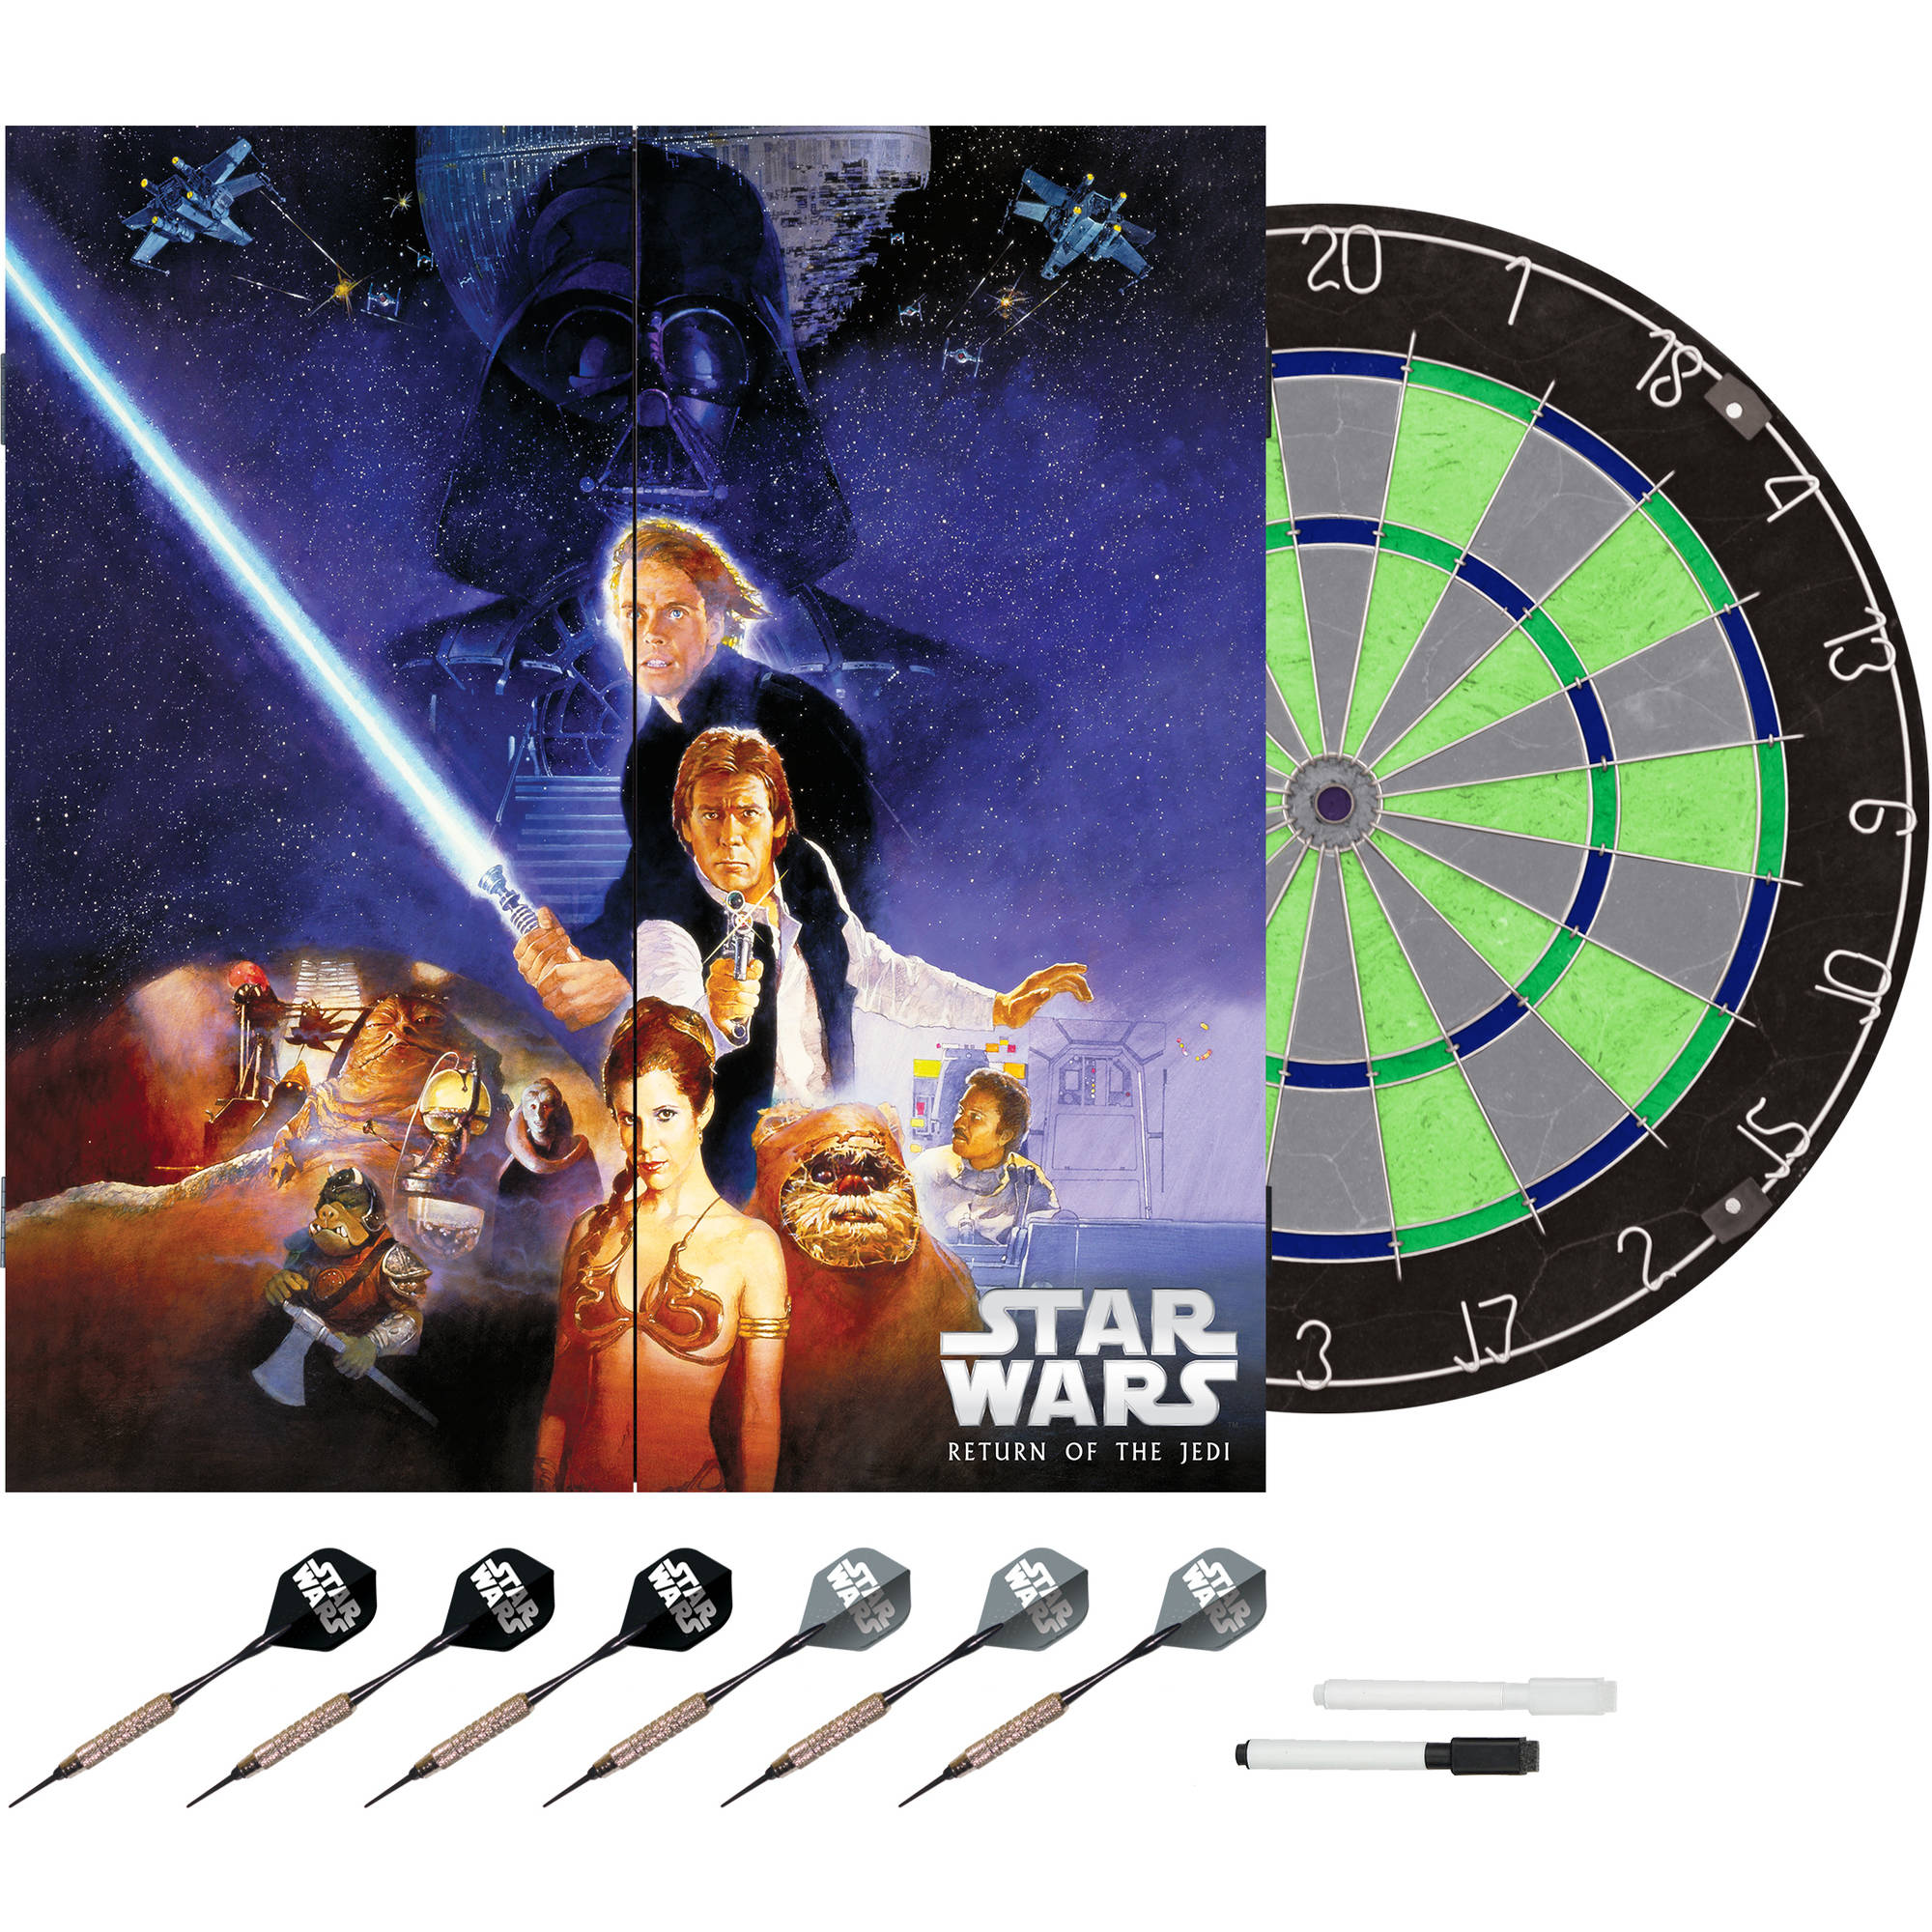 Limited Edition Star Wars The Return of the Jedi Bristle Dartboard with Cabinet by